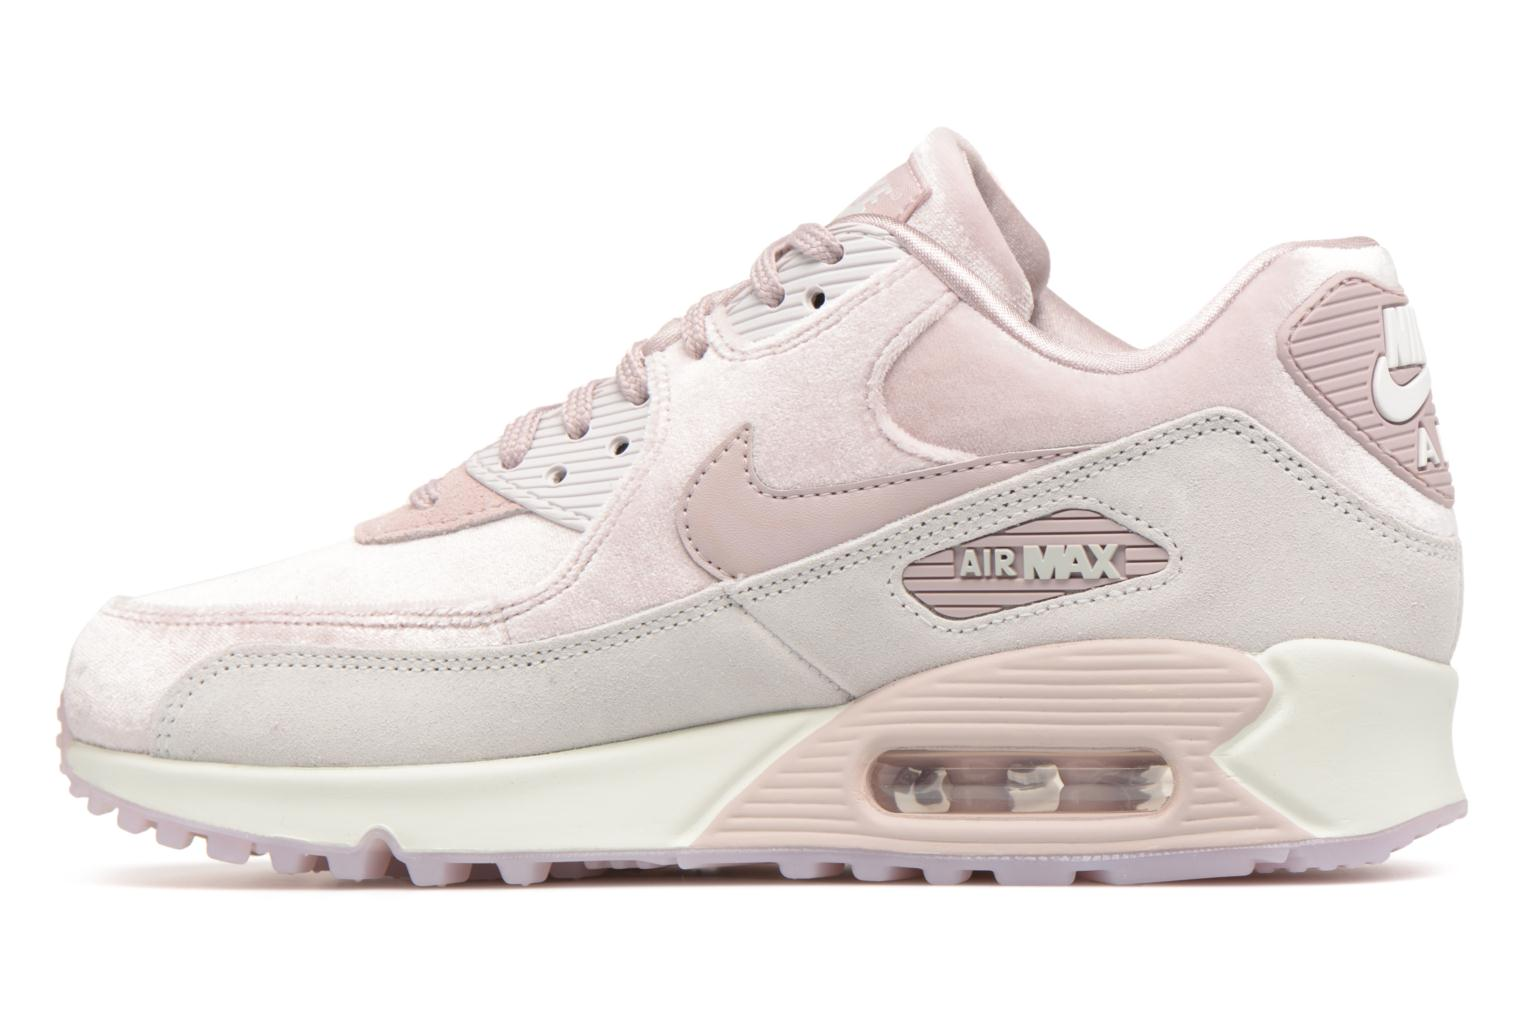 Wmns Air Max 90 Lx Particle Rose/Particle Rose-Vast Grey